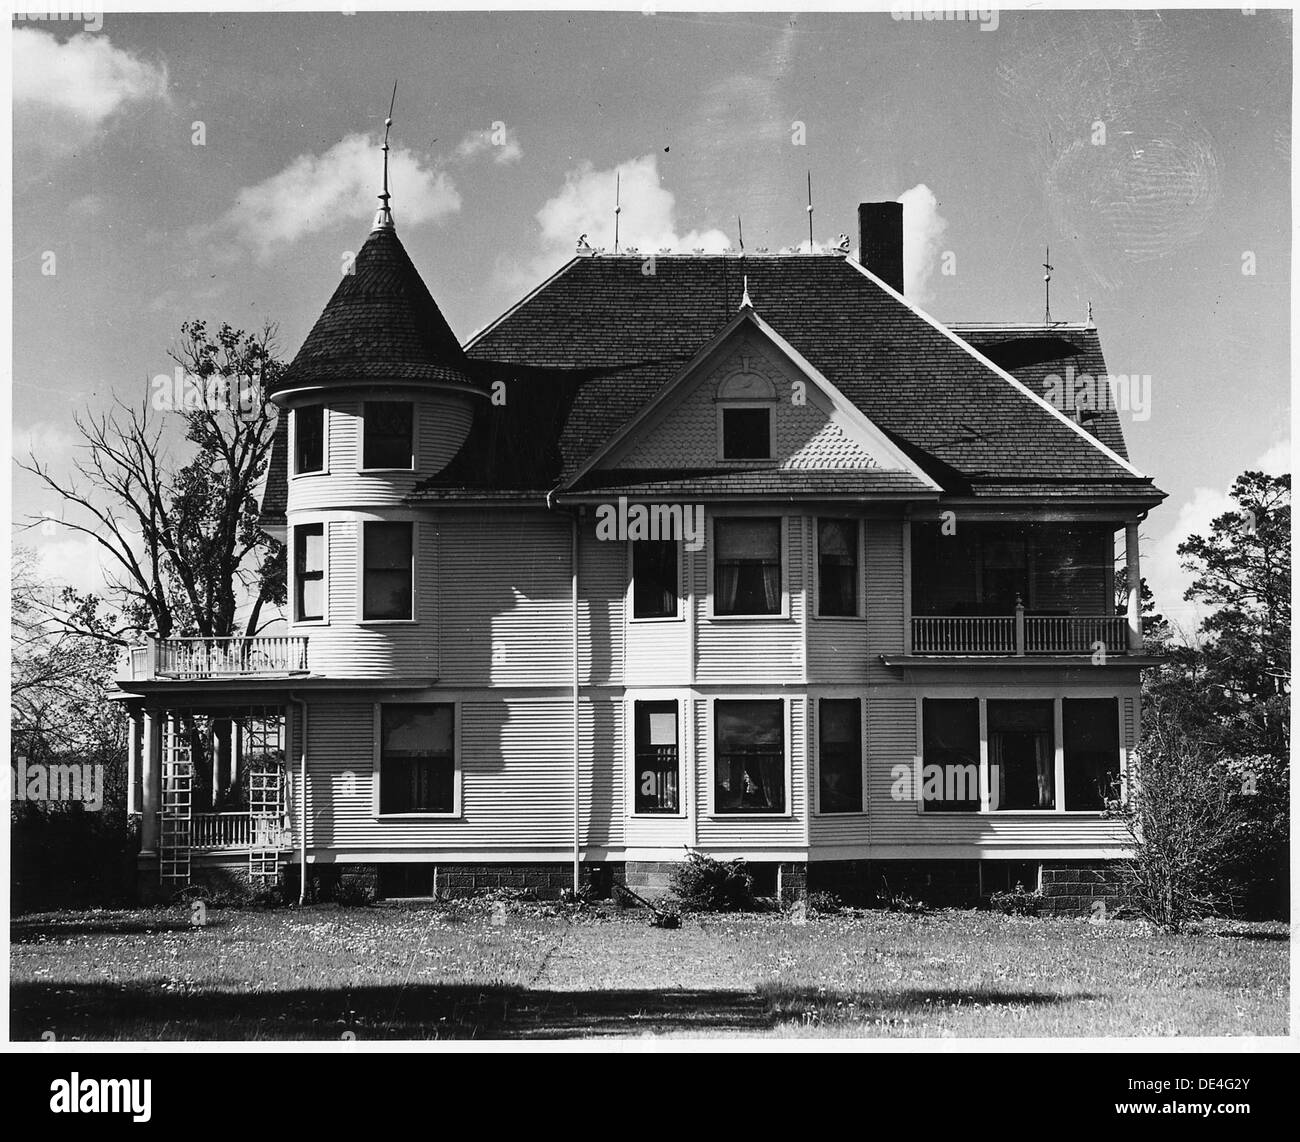 Shelby County, Iowa. The man who owns this place is a Norwegian who settled in the community when it . . . 522325 Stock Photo